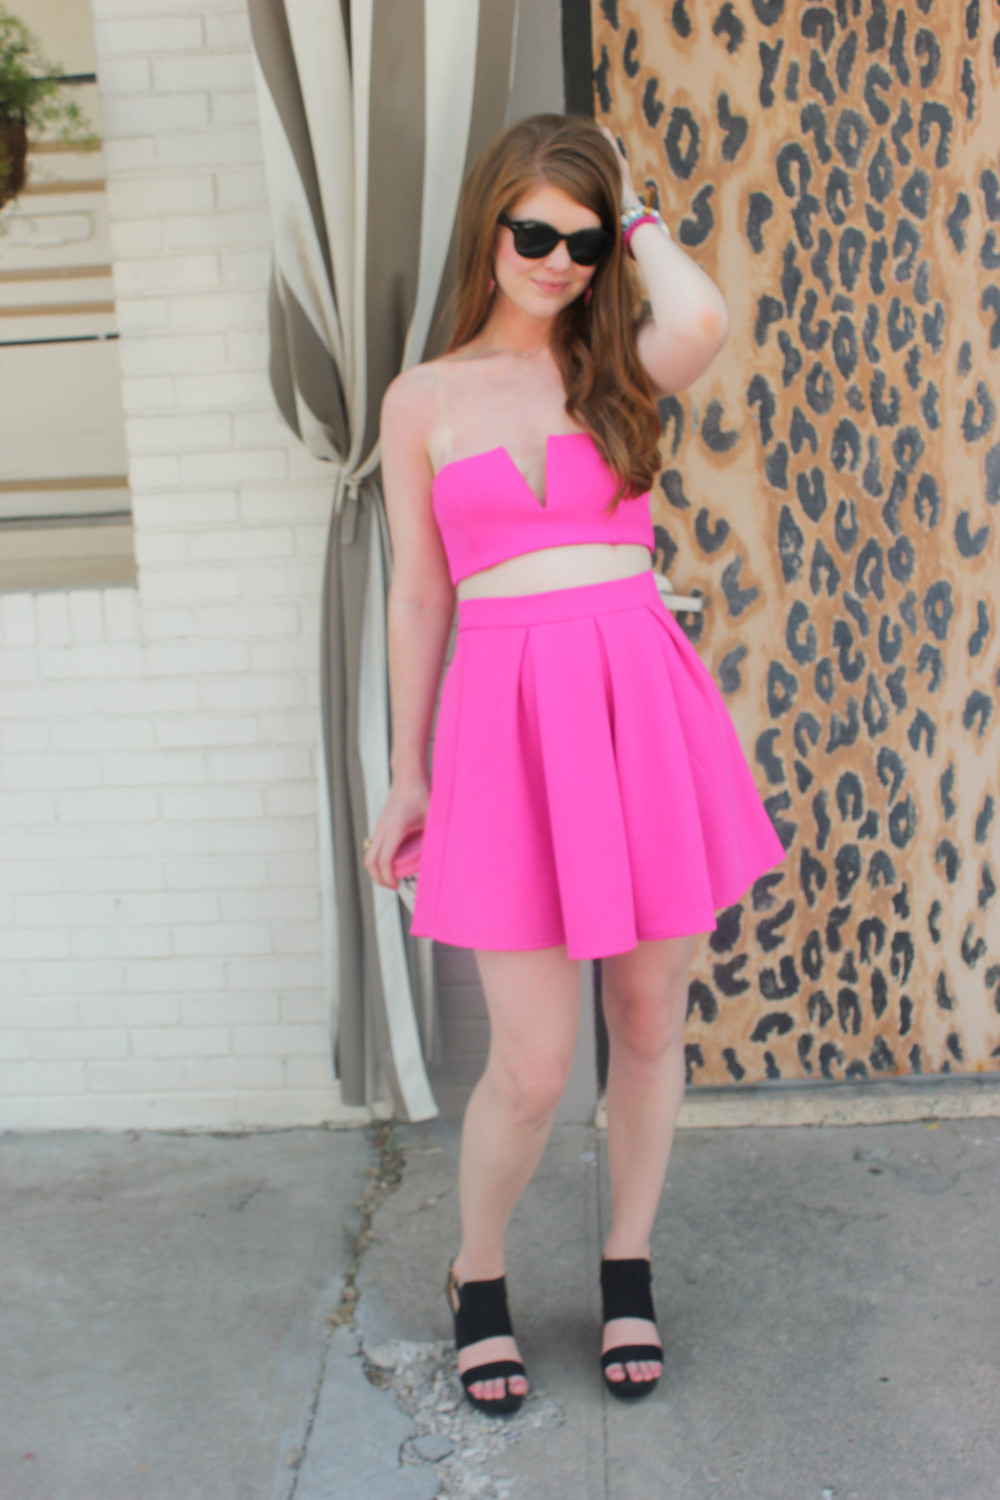 Allison Kate | Southern Elle Style Shop Share | Dallas Fashion Blogger